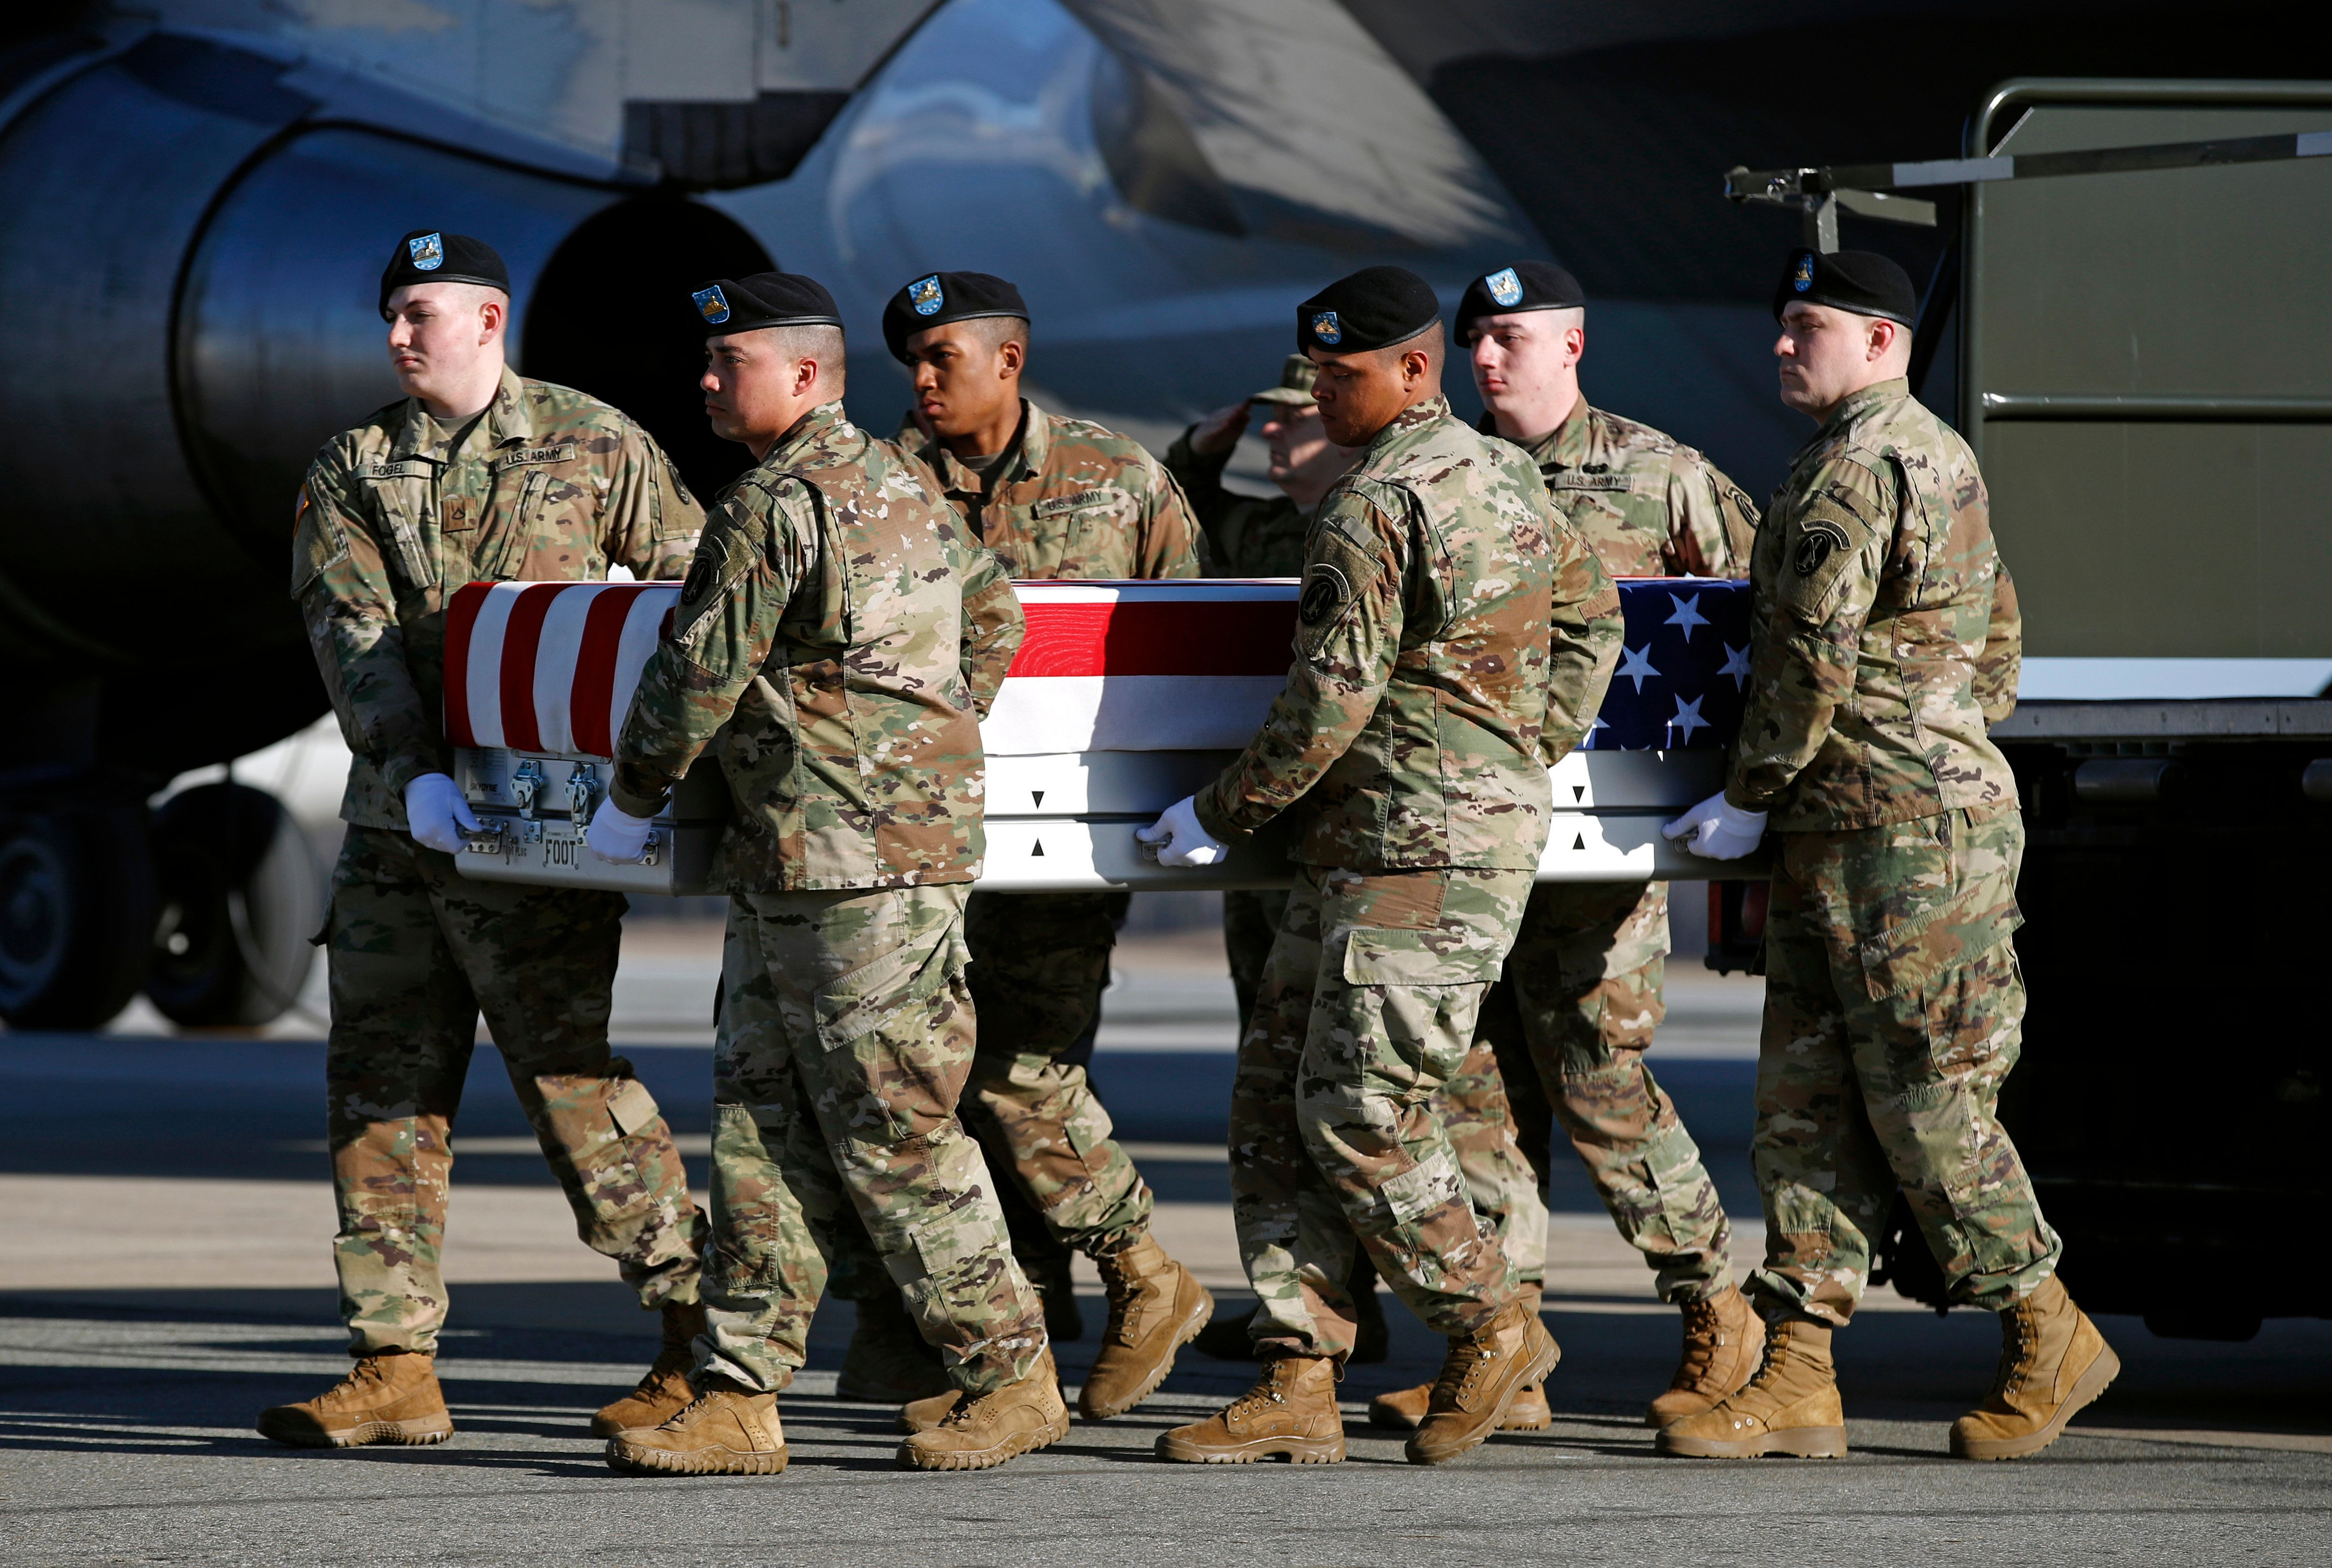 A U.S. Army carry team moves a transfer case containing the remains of Spc. Joseph P. Collette, Sunday, March 24, 2019, at Do